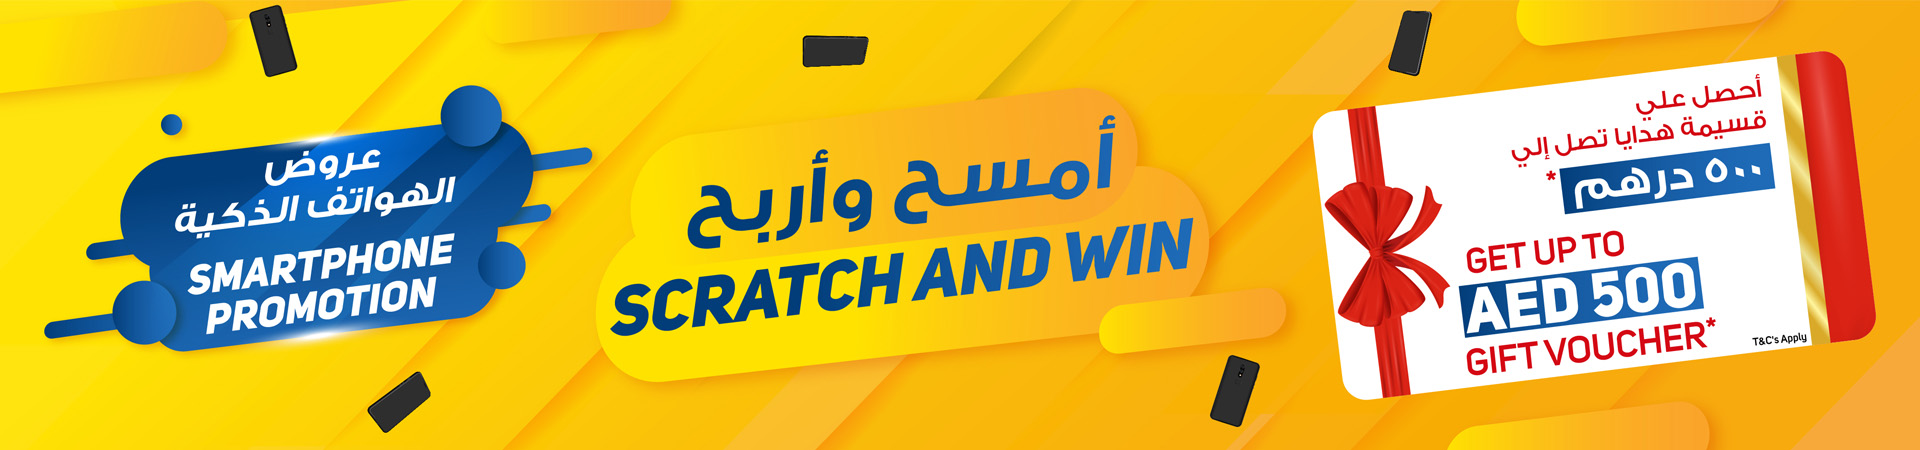 Smartphone Promotion – Scratch & Win, GET UP TO AED 500 GIFT VOUCHER*